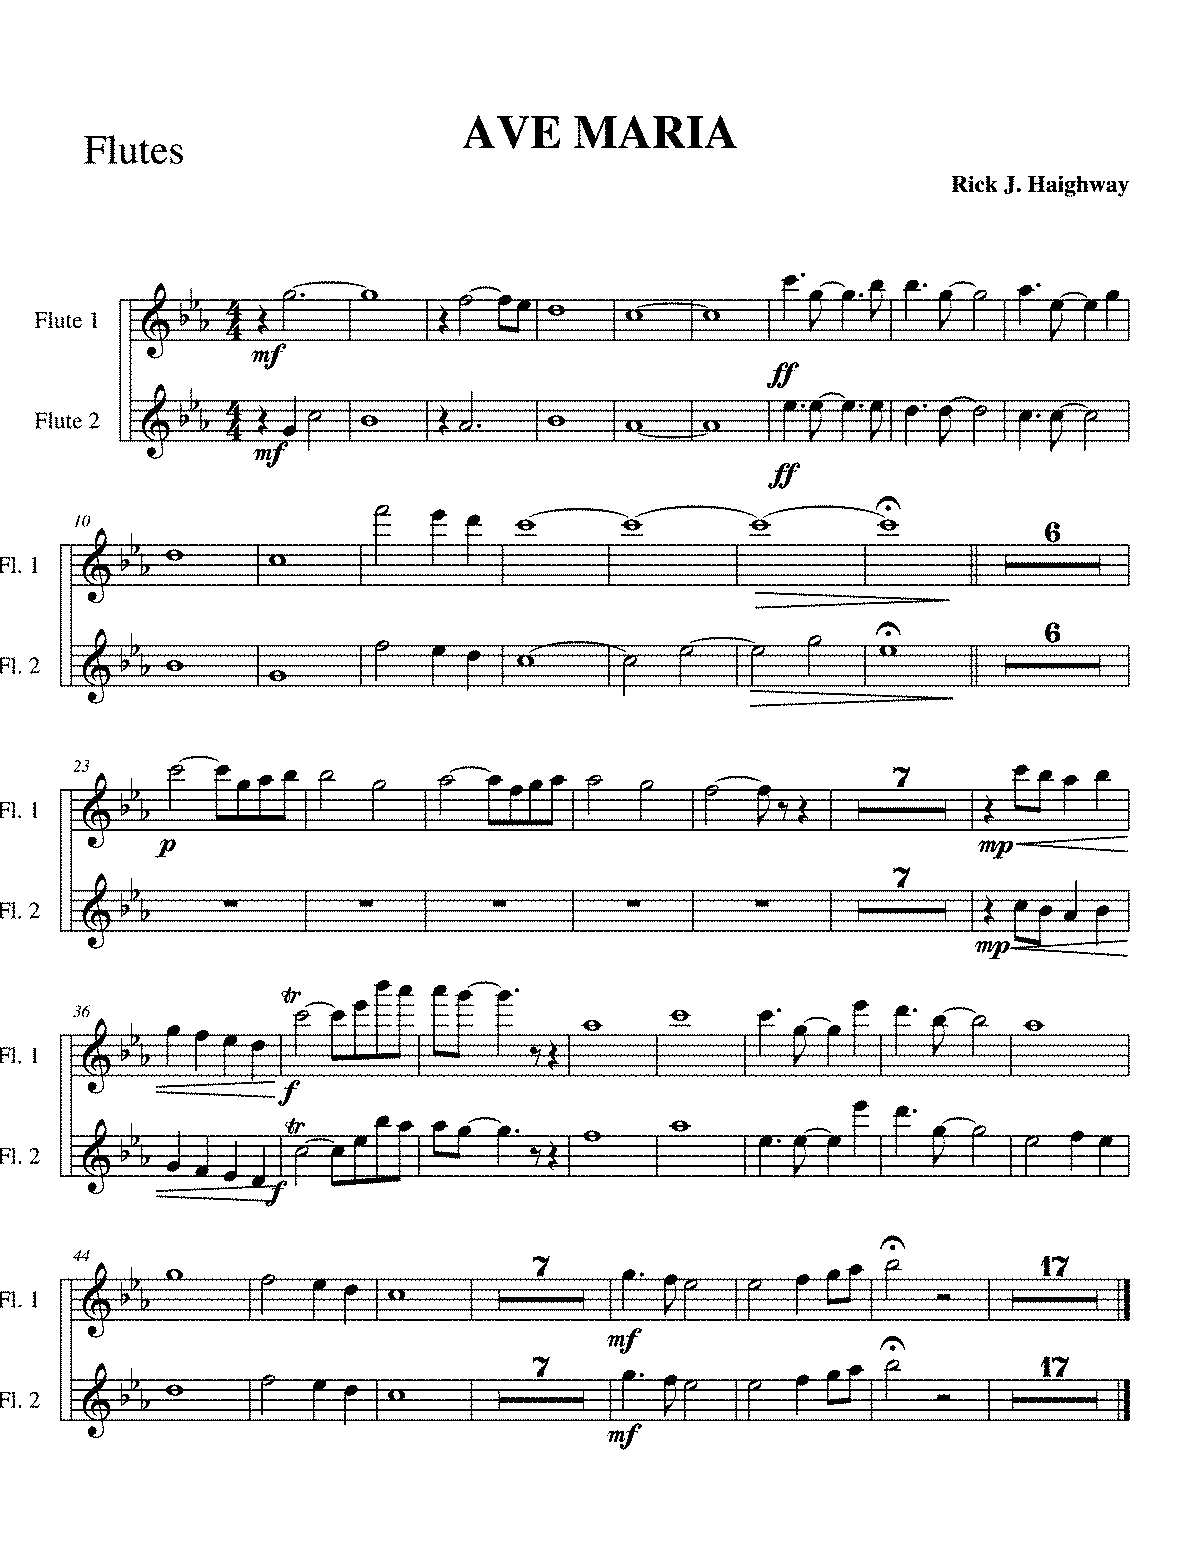 PMLP440245-Finale PrintMusic 2008 - -Ave Maria Orchestra - 001G Flutes.pdf